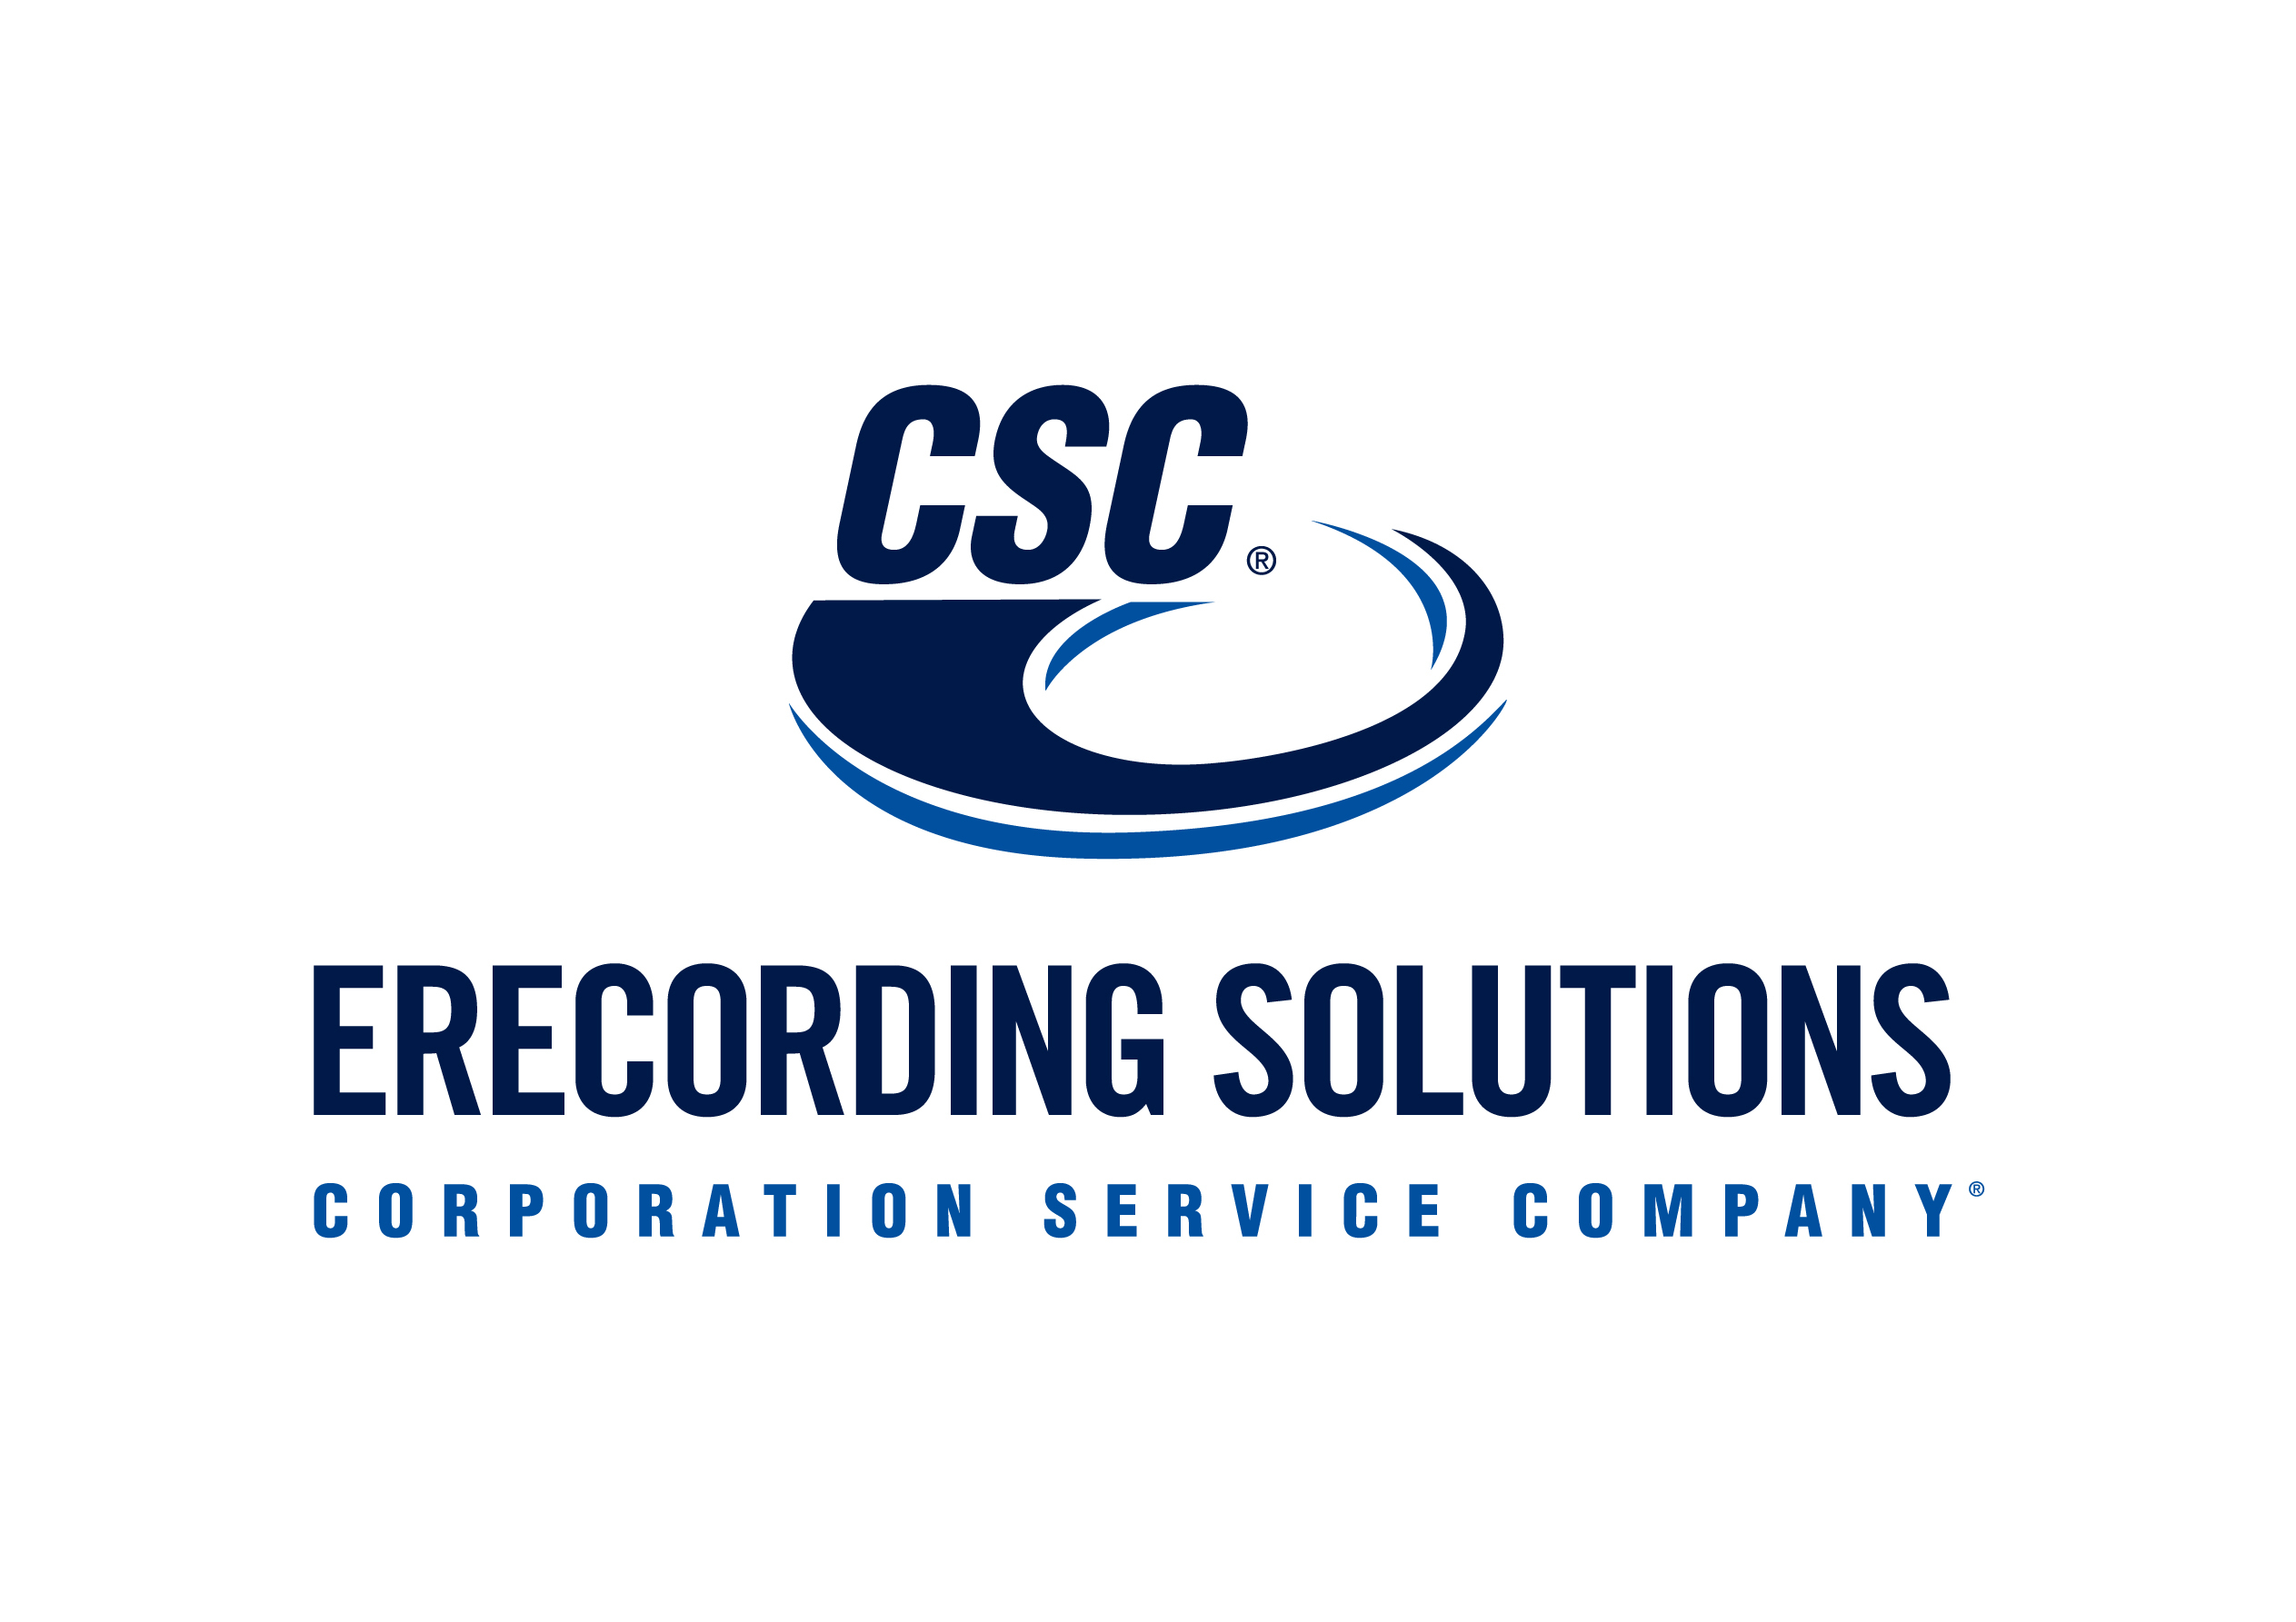 eRecording Solutions